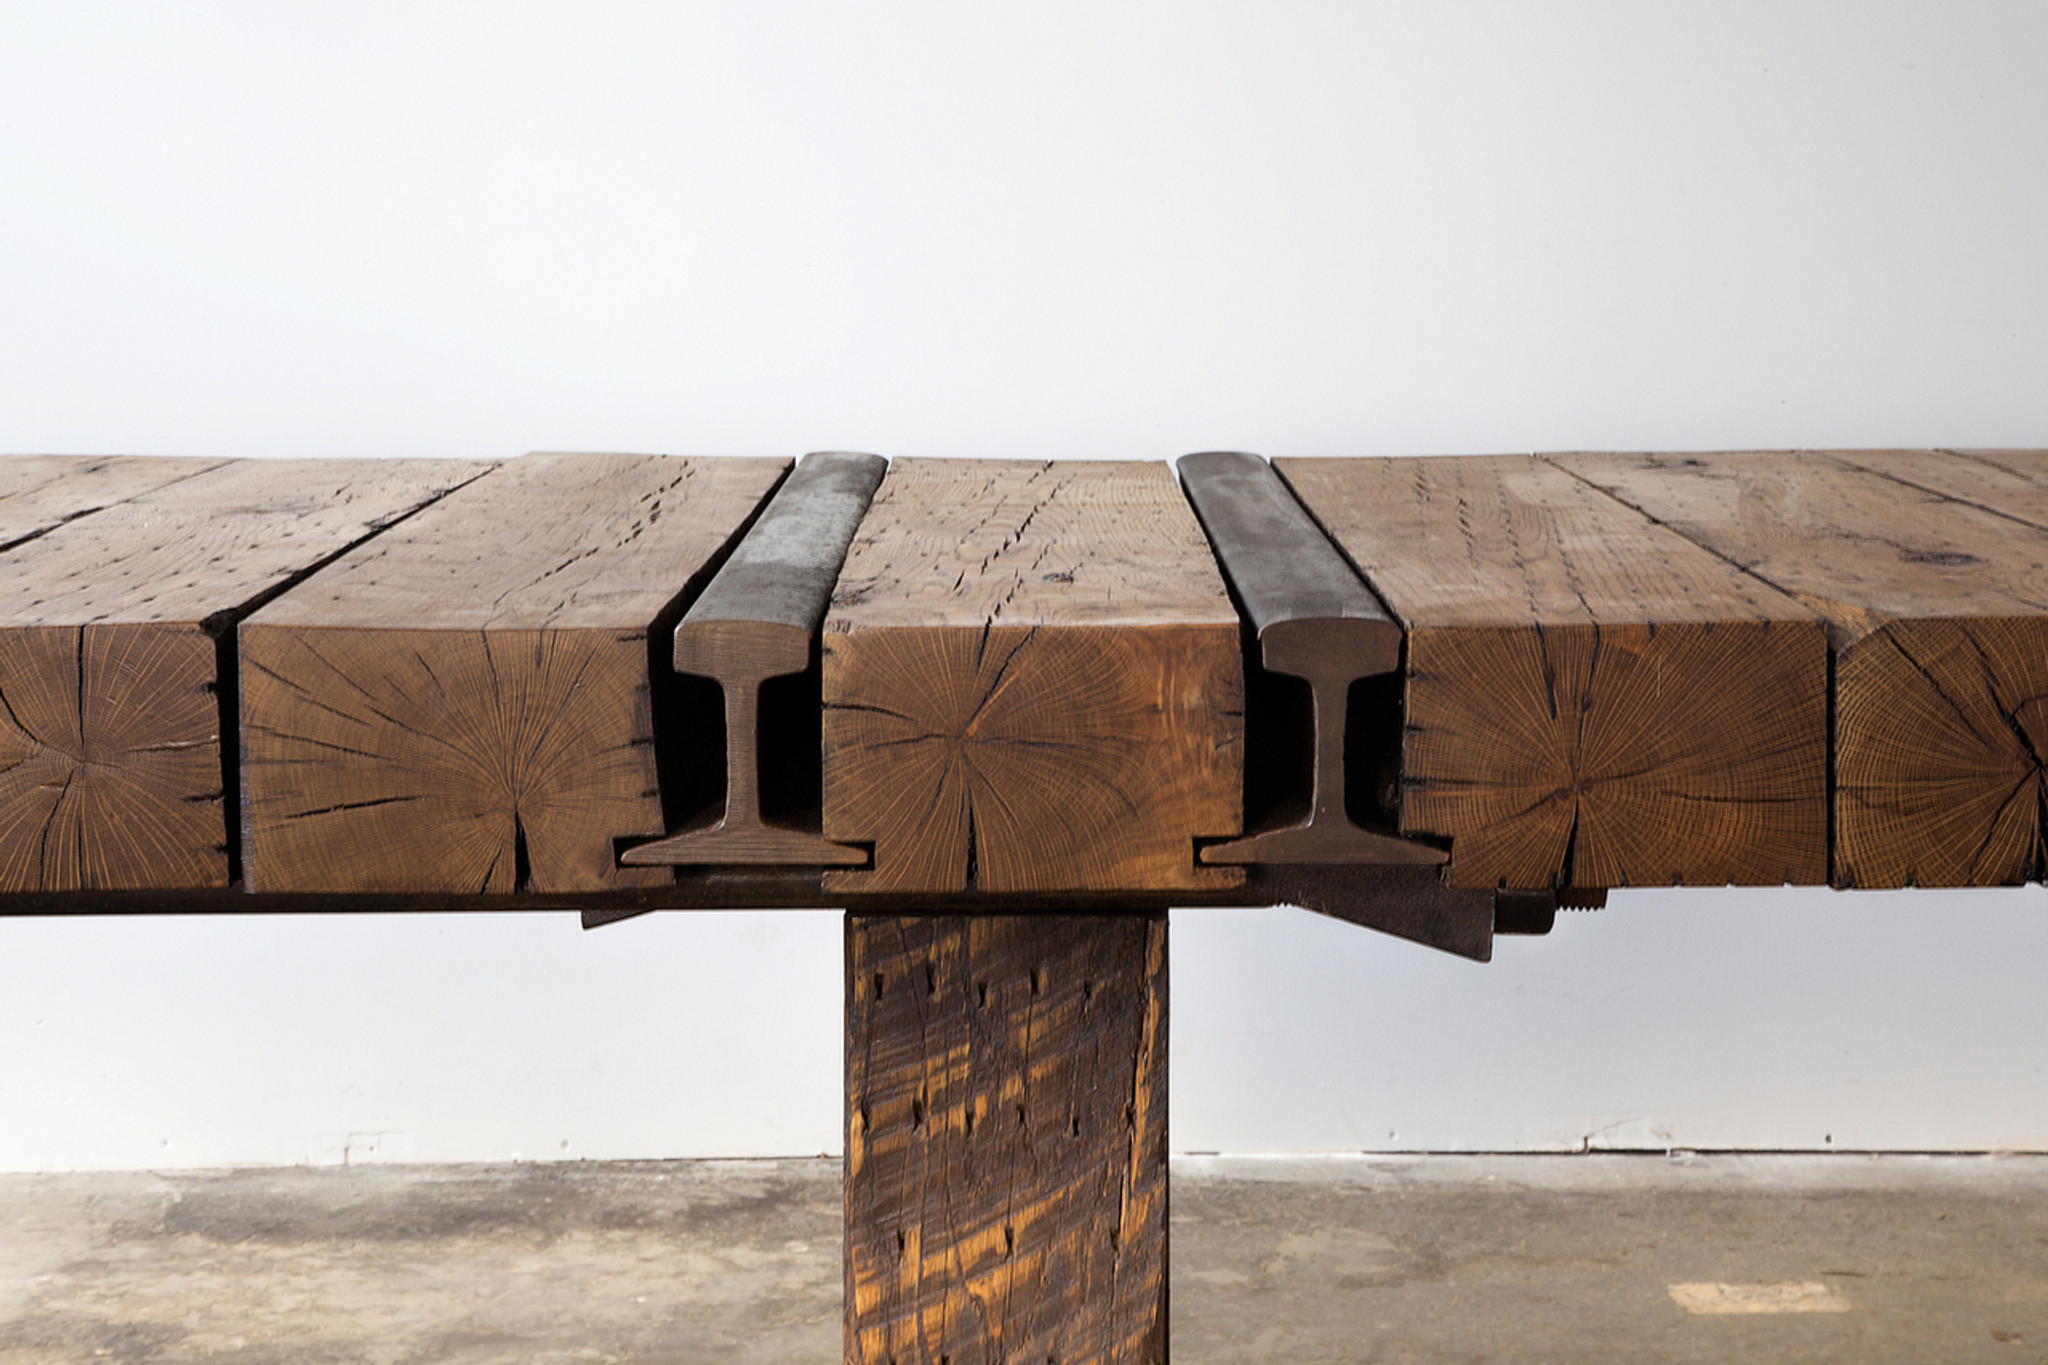 artisan detailed conference room table from reclaimed timber beams and industrial steel i-beams